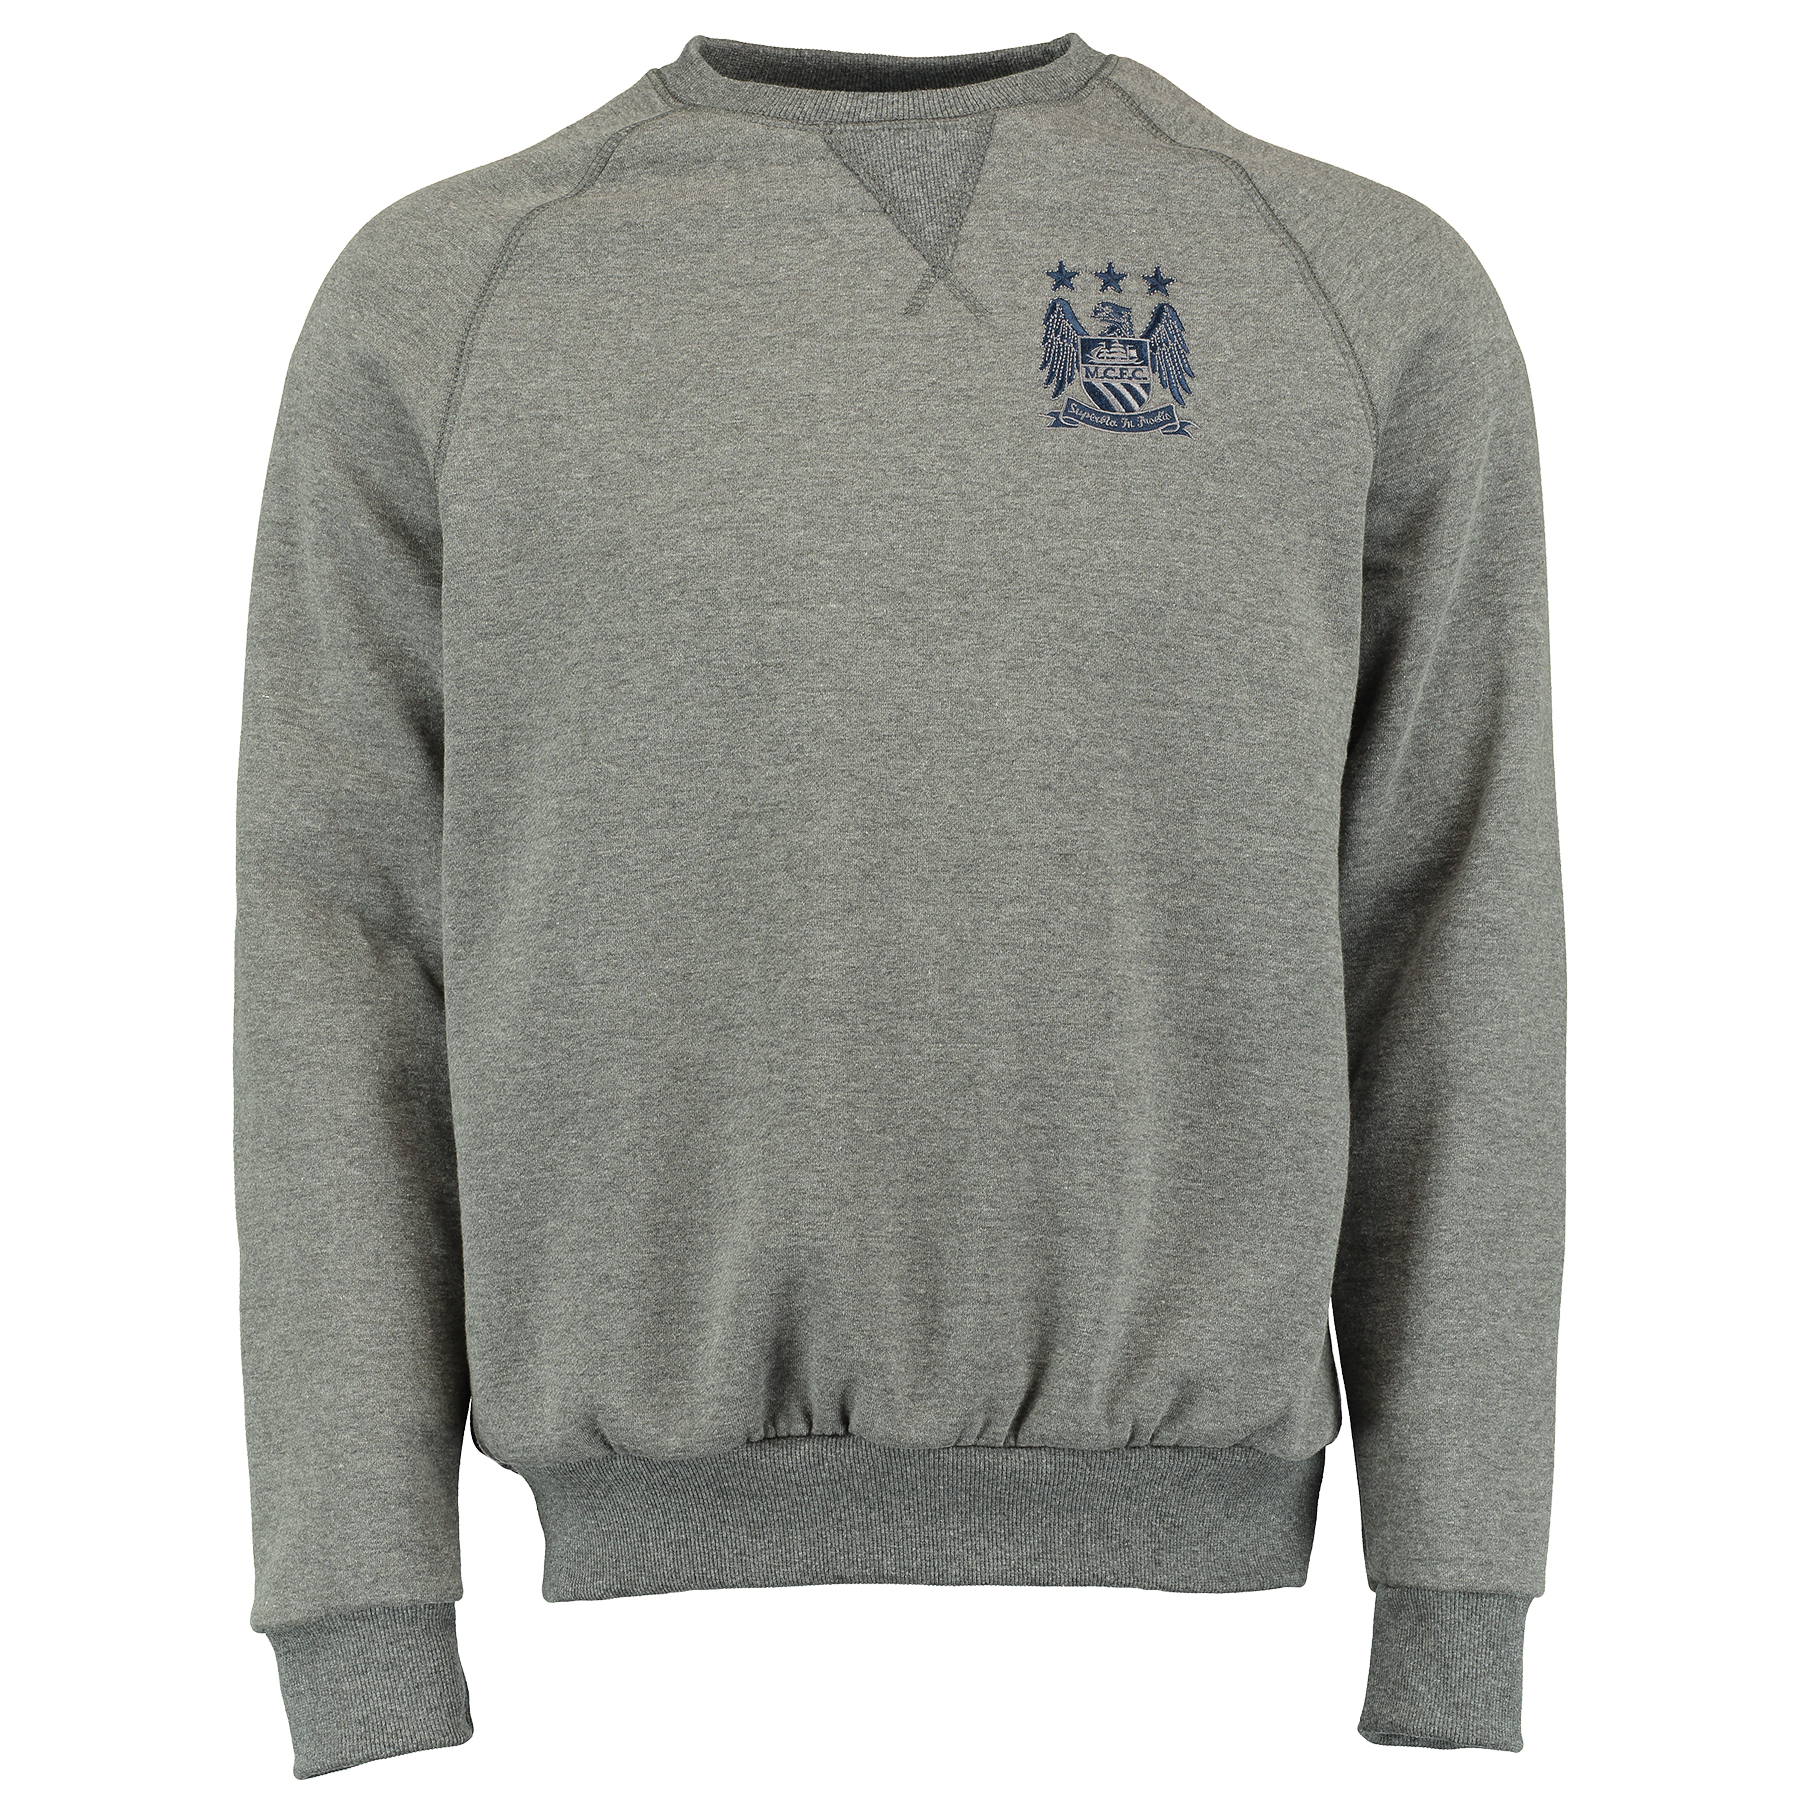 Manchester City Essential Crew Neck Sweater - Vintage Marl - Mens